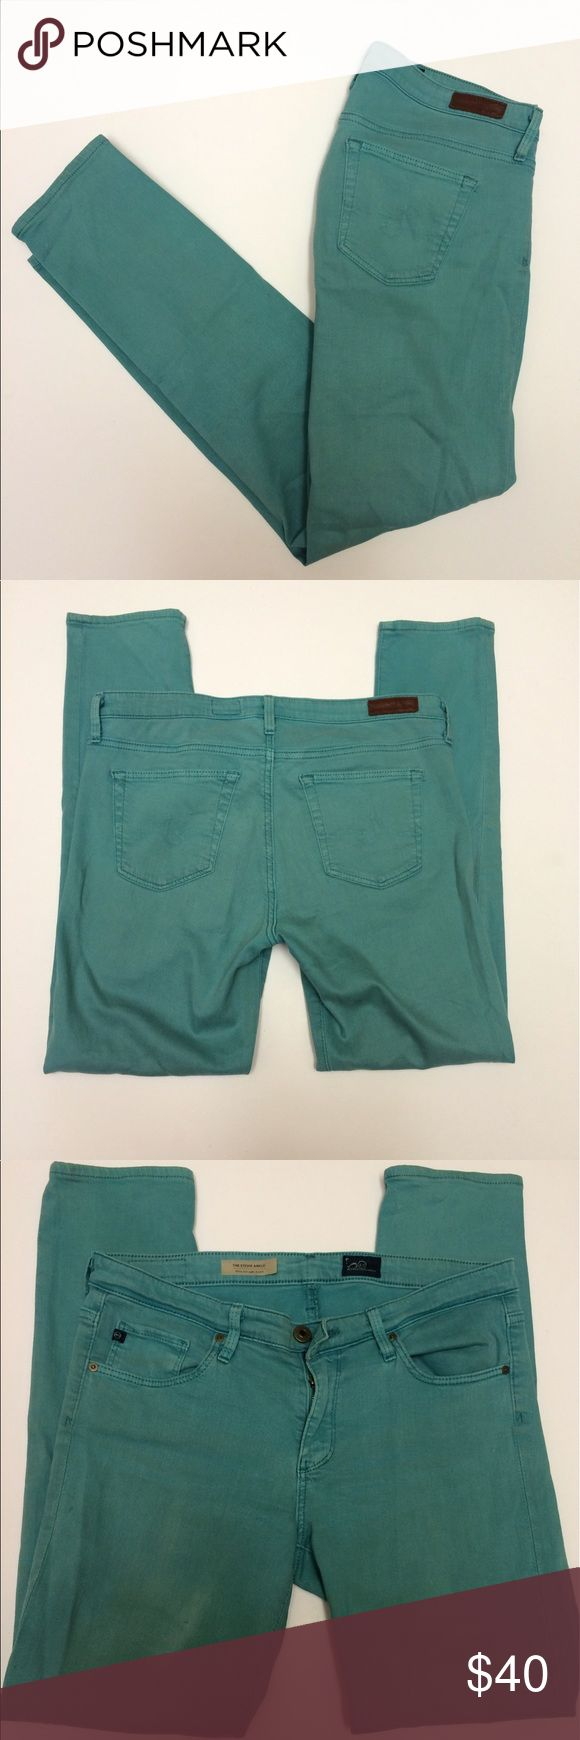 "AG ""The Stevie"" Teal Skinny Jeans AG ""The Stevie""  Slim straight ankle jeans  Teal color 8"" rise  27"" inseam  Size 29R  They are patched on the inside - see last photo - not visible from the exterior! Ag Adriano Goldschmied Jeans Skinny"